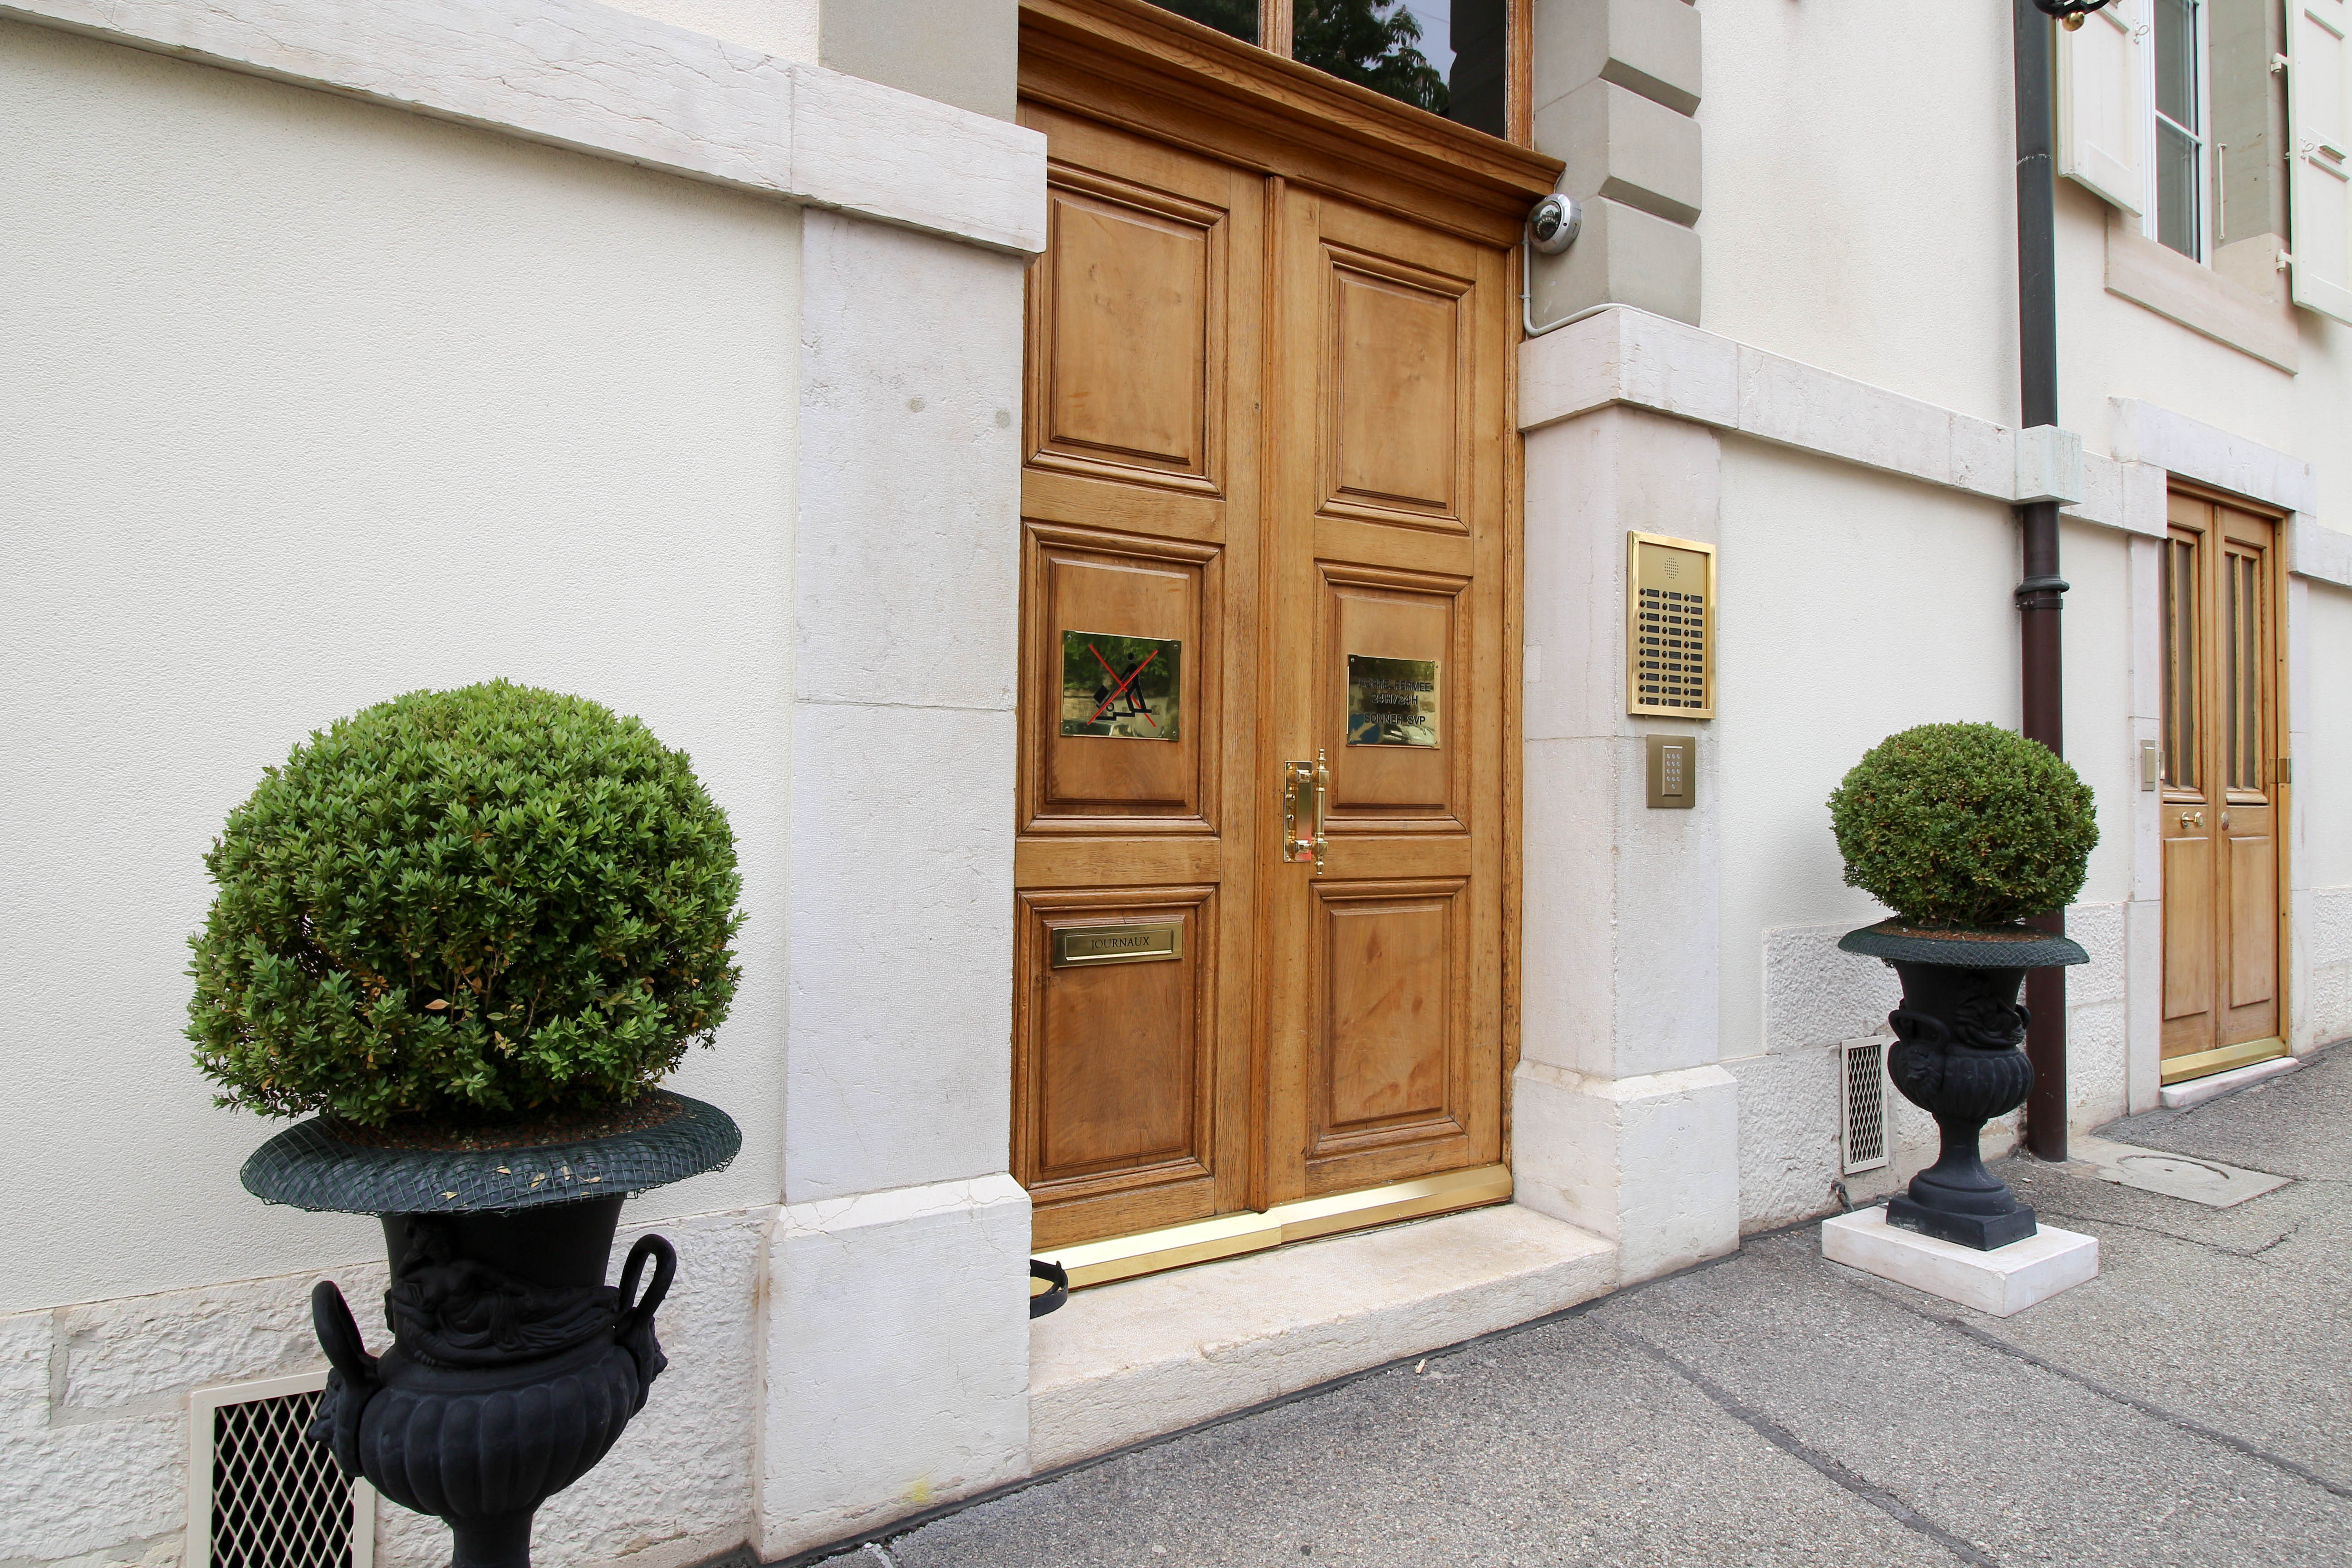 Immobilier luxe Genève